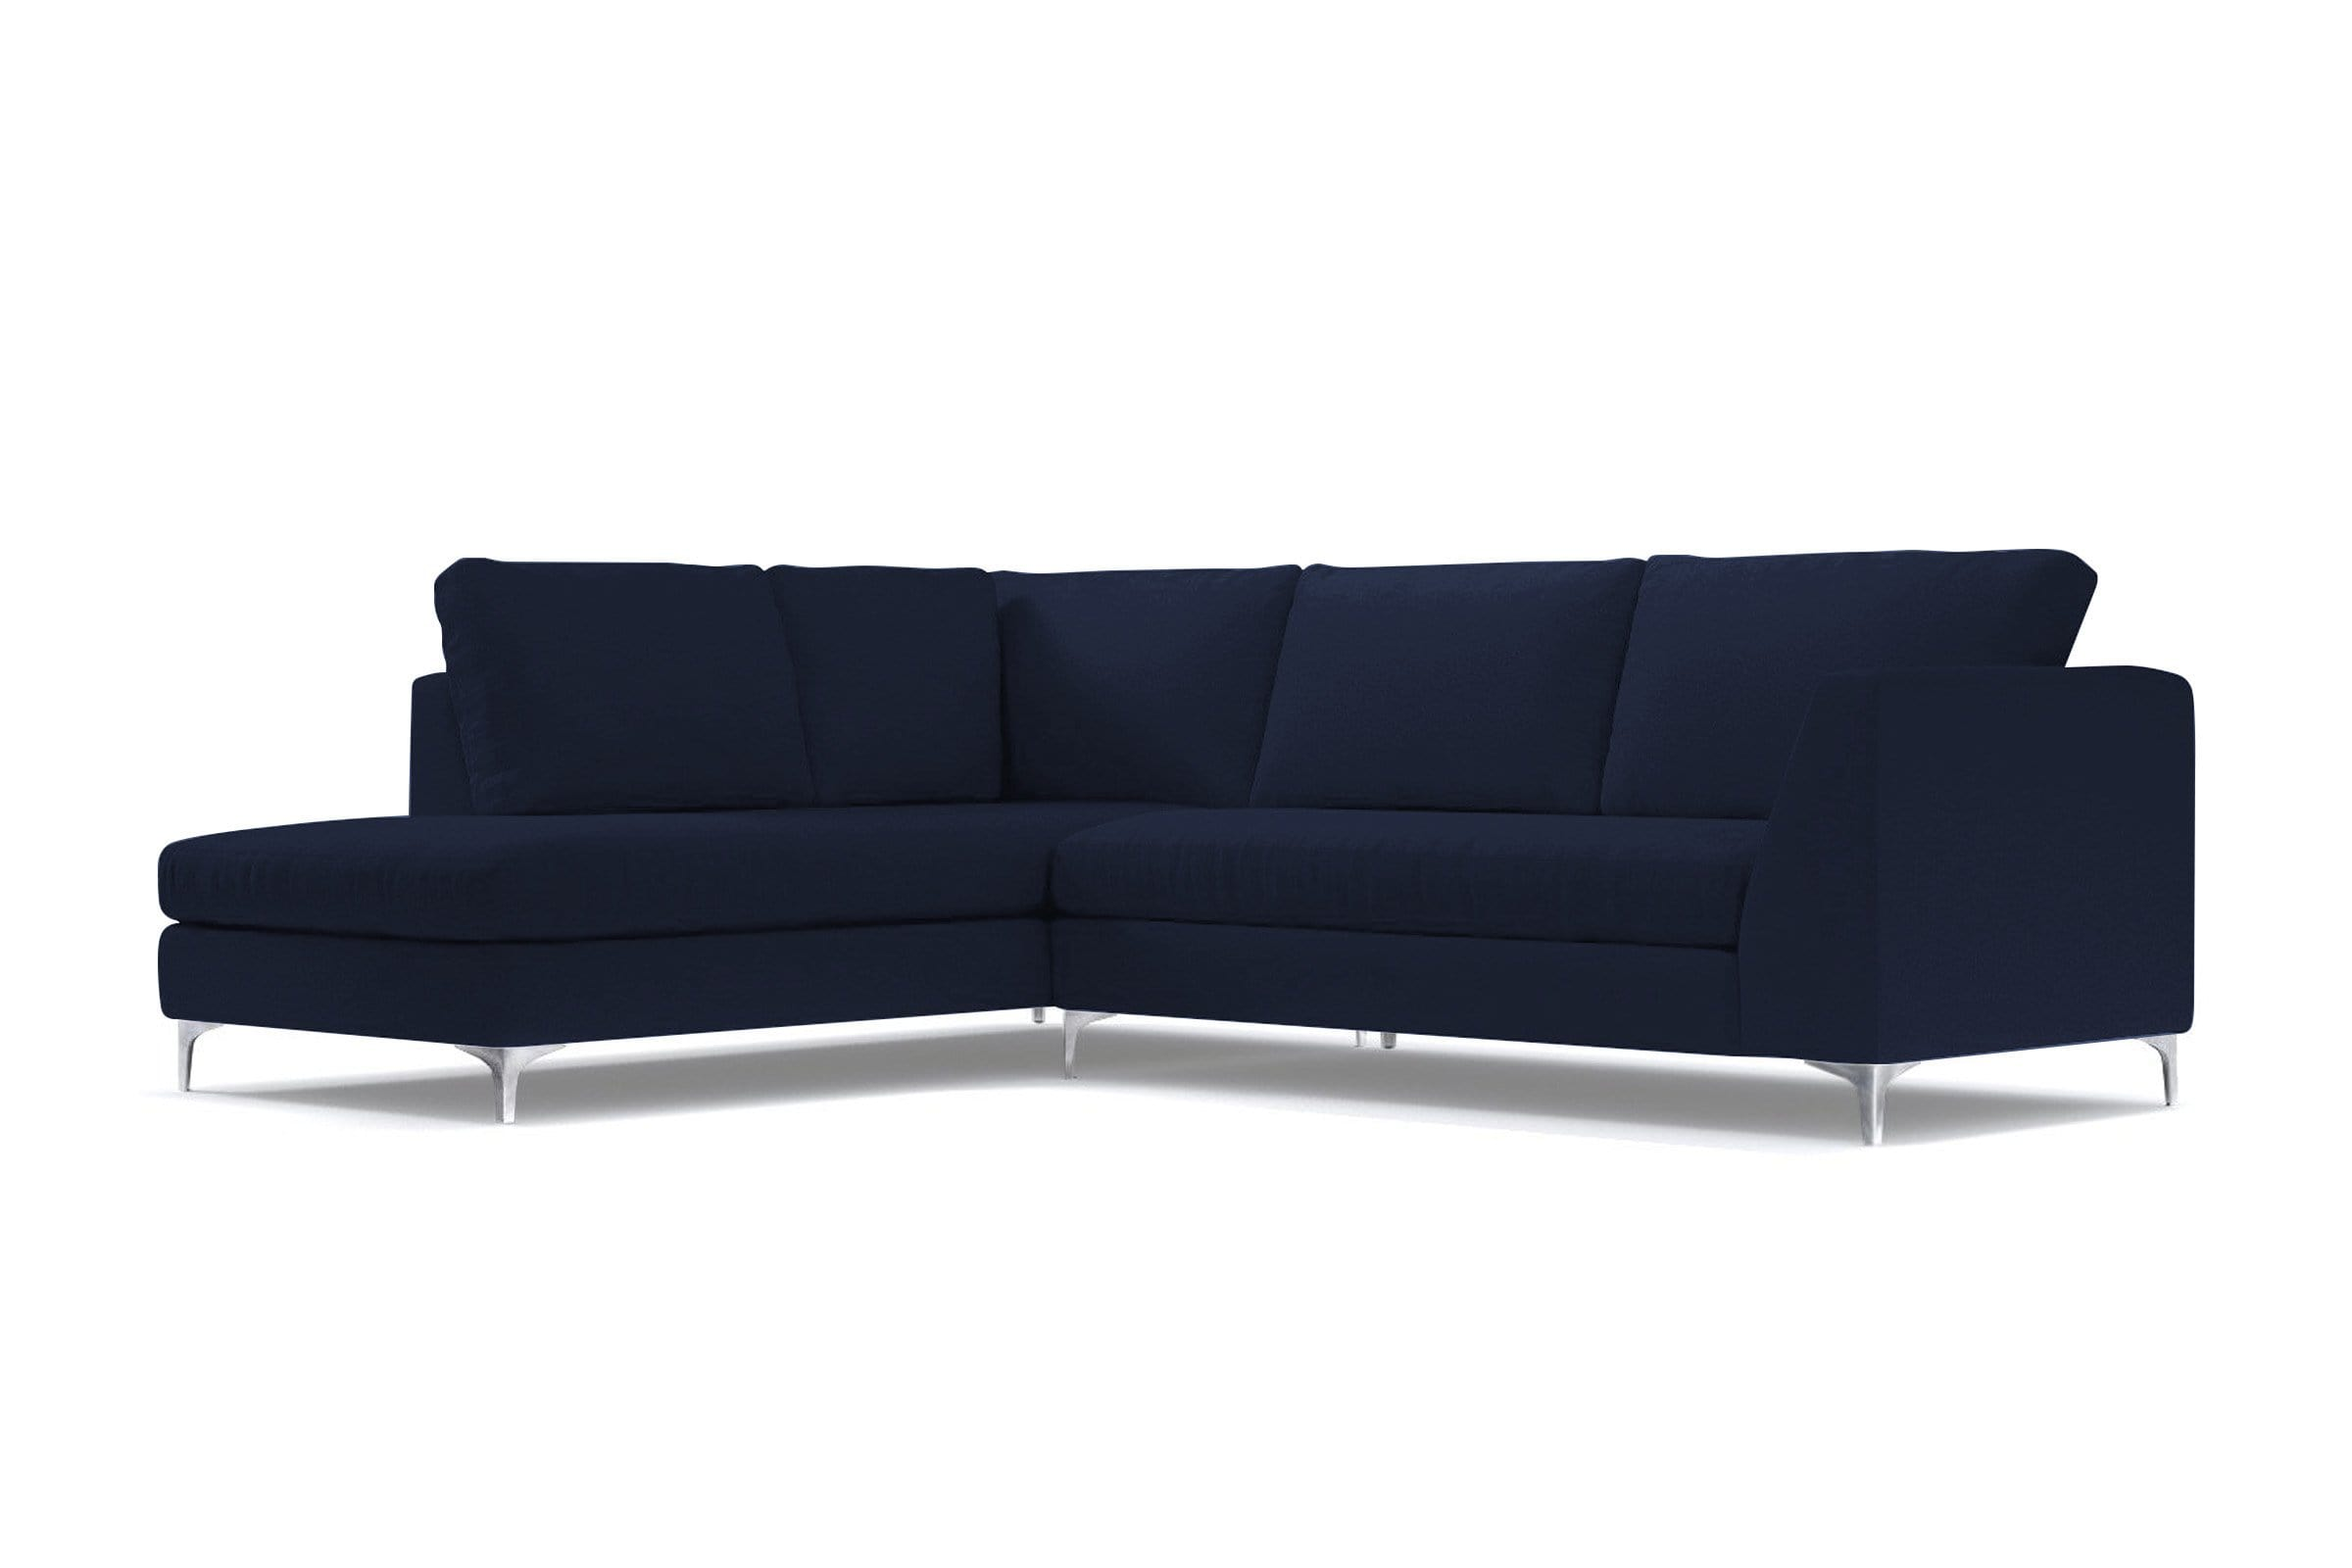 Mulholland 2pc Sectional Sofa - Dark Blue Velvet - Modern Sectional Sofa Made in USA - Sold by Apt2B